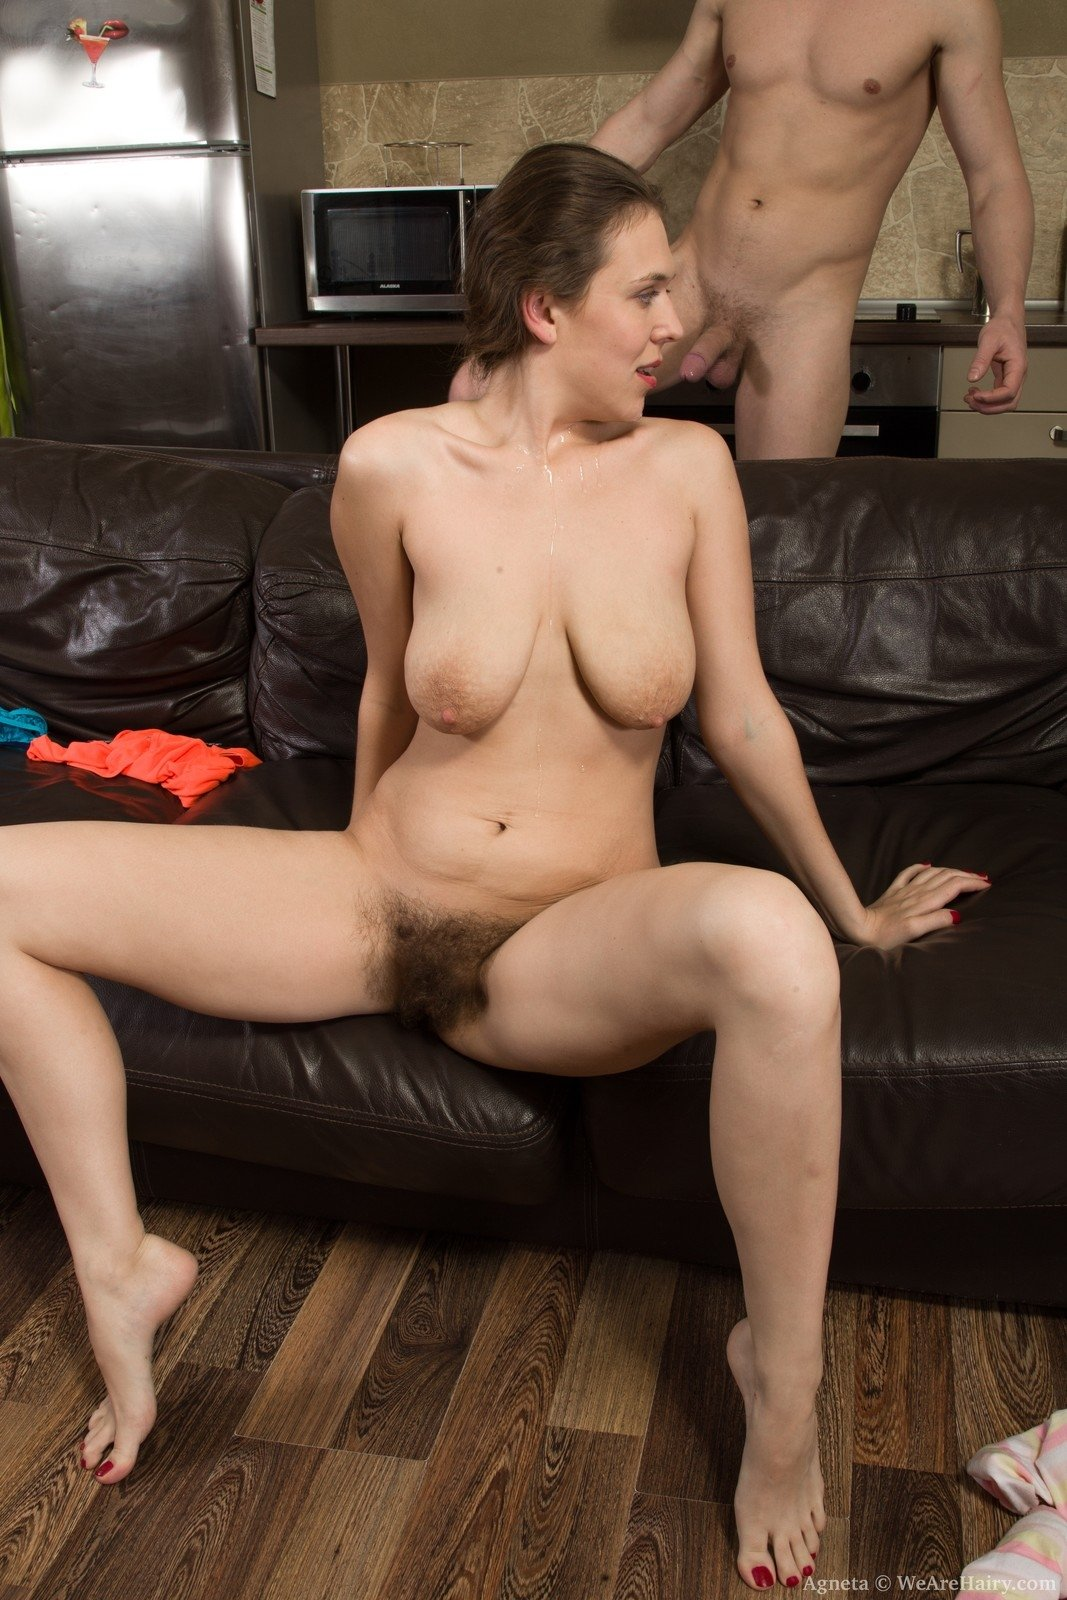 JoJojas    reccomended naked amateur mom pictures